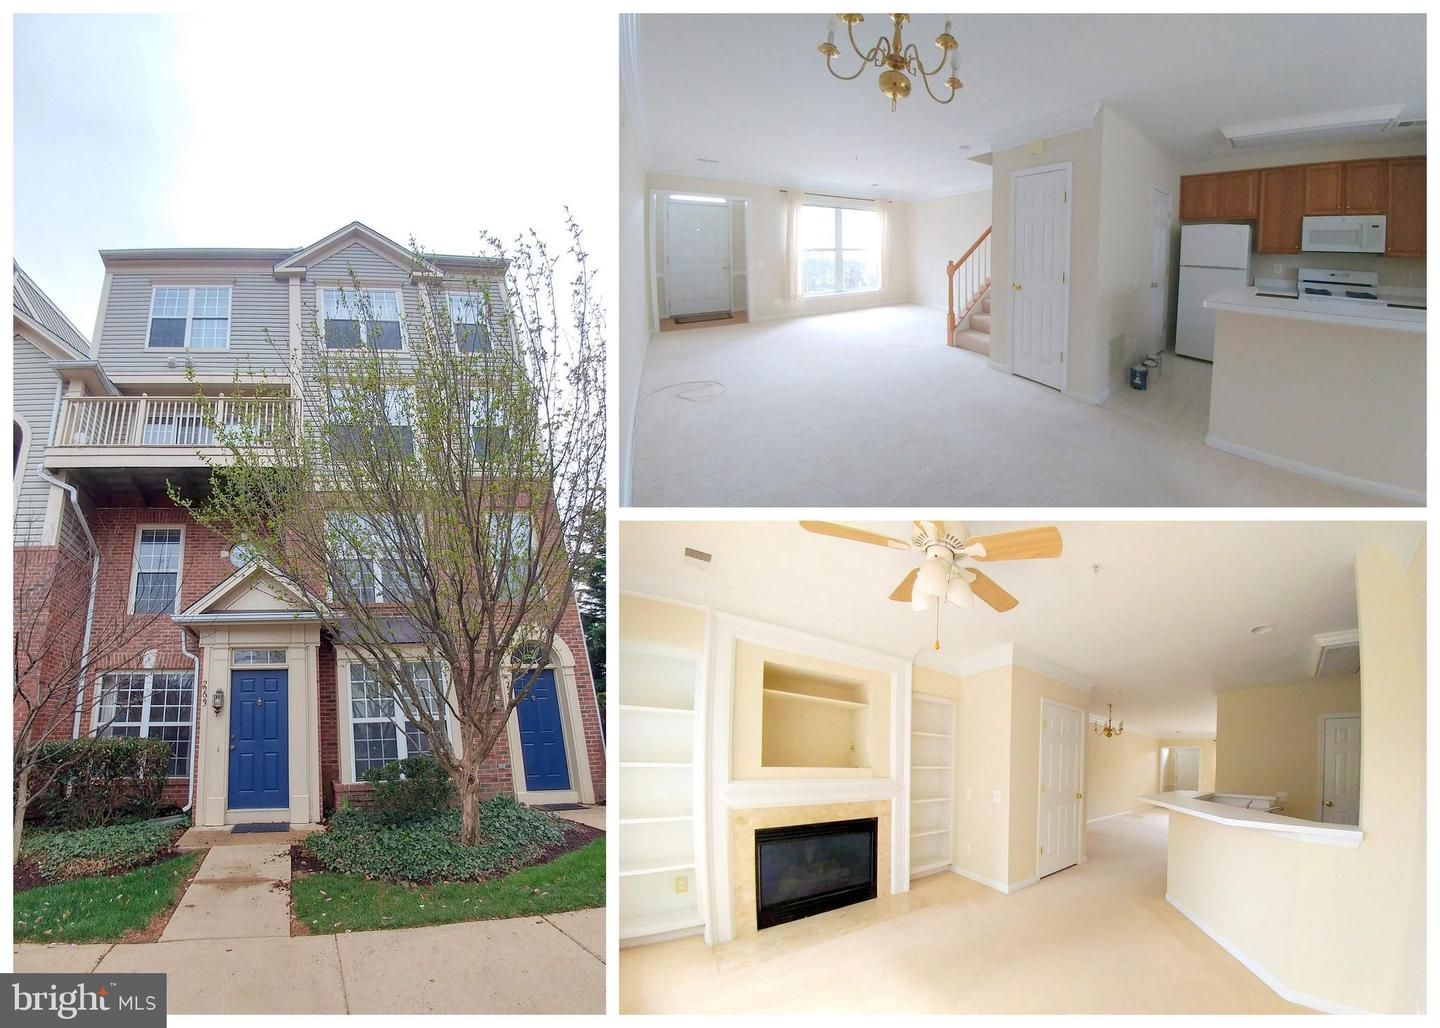 Property for Rent at Falls Church, Virginia 22043 United States